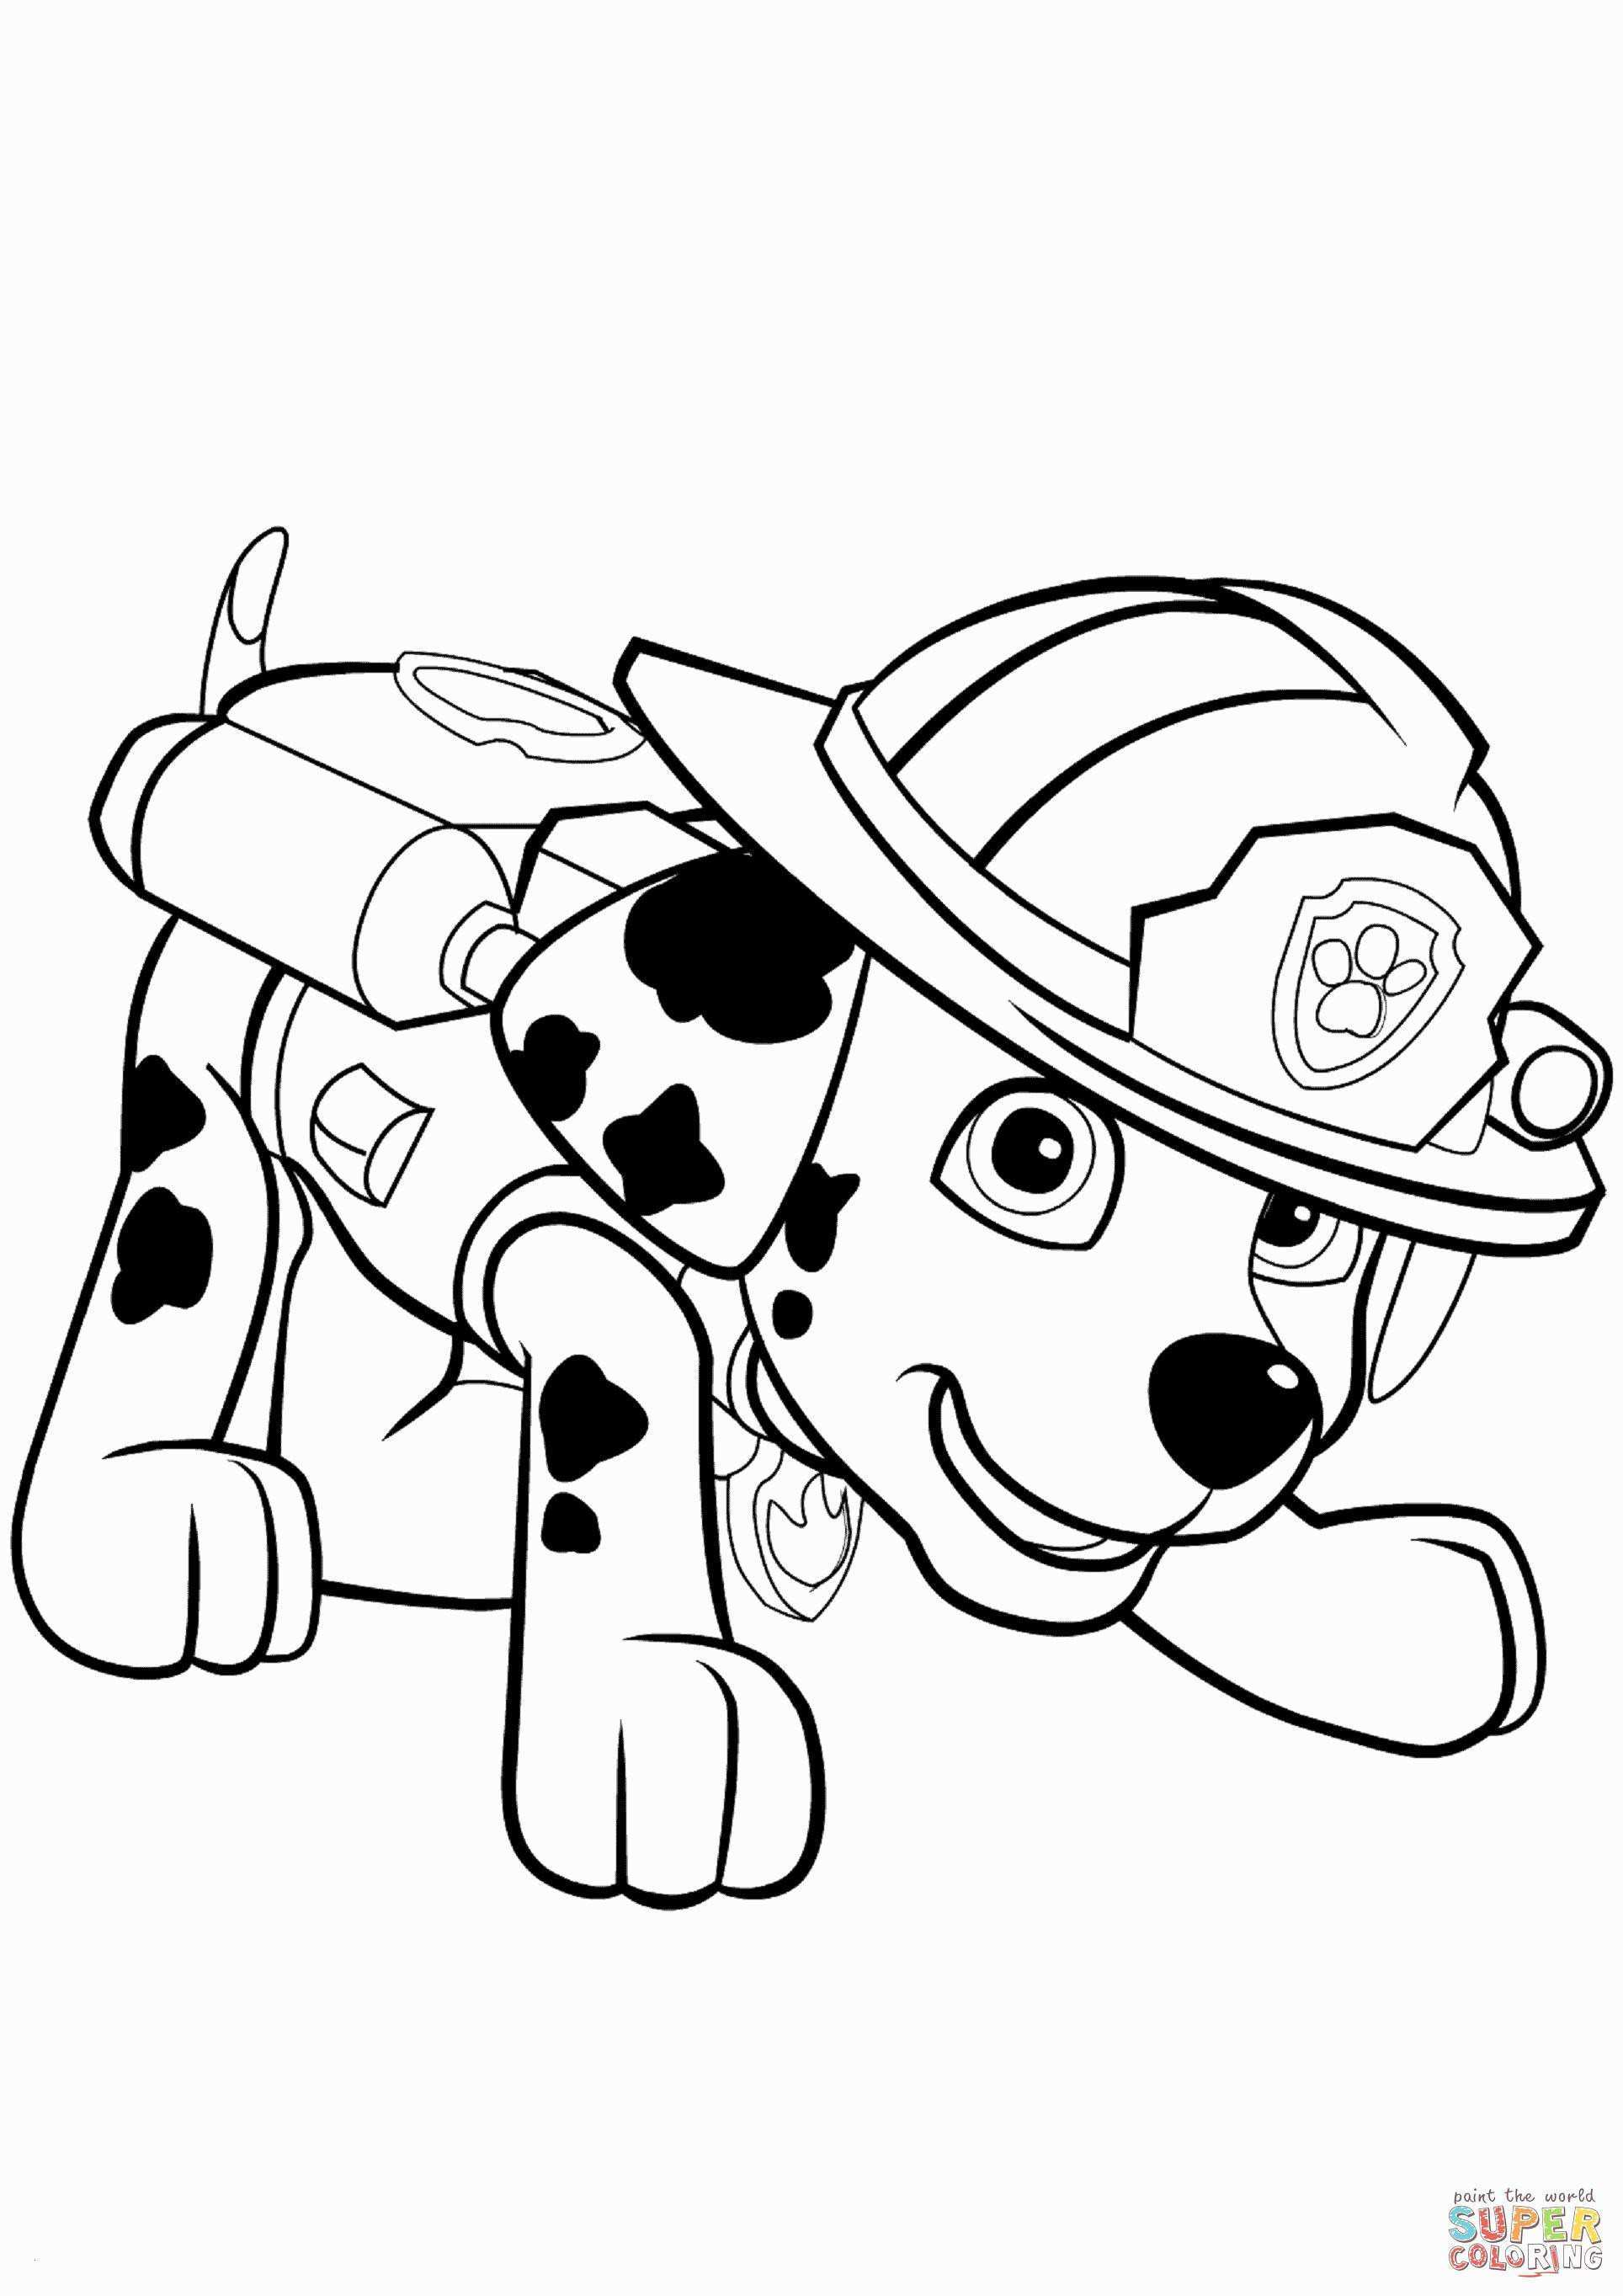 Collection of Nerf clipart | Free download best Nerf ...